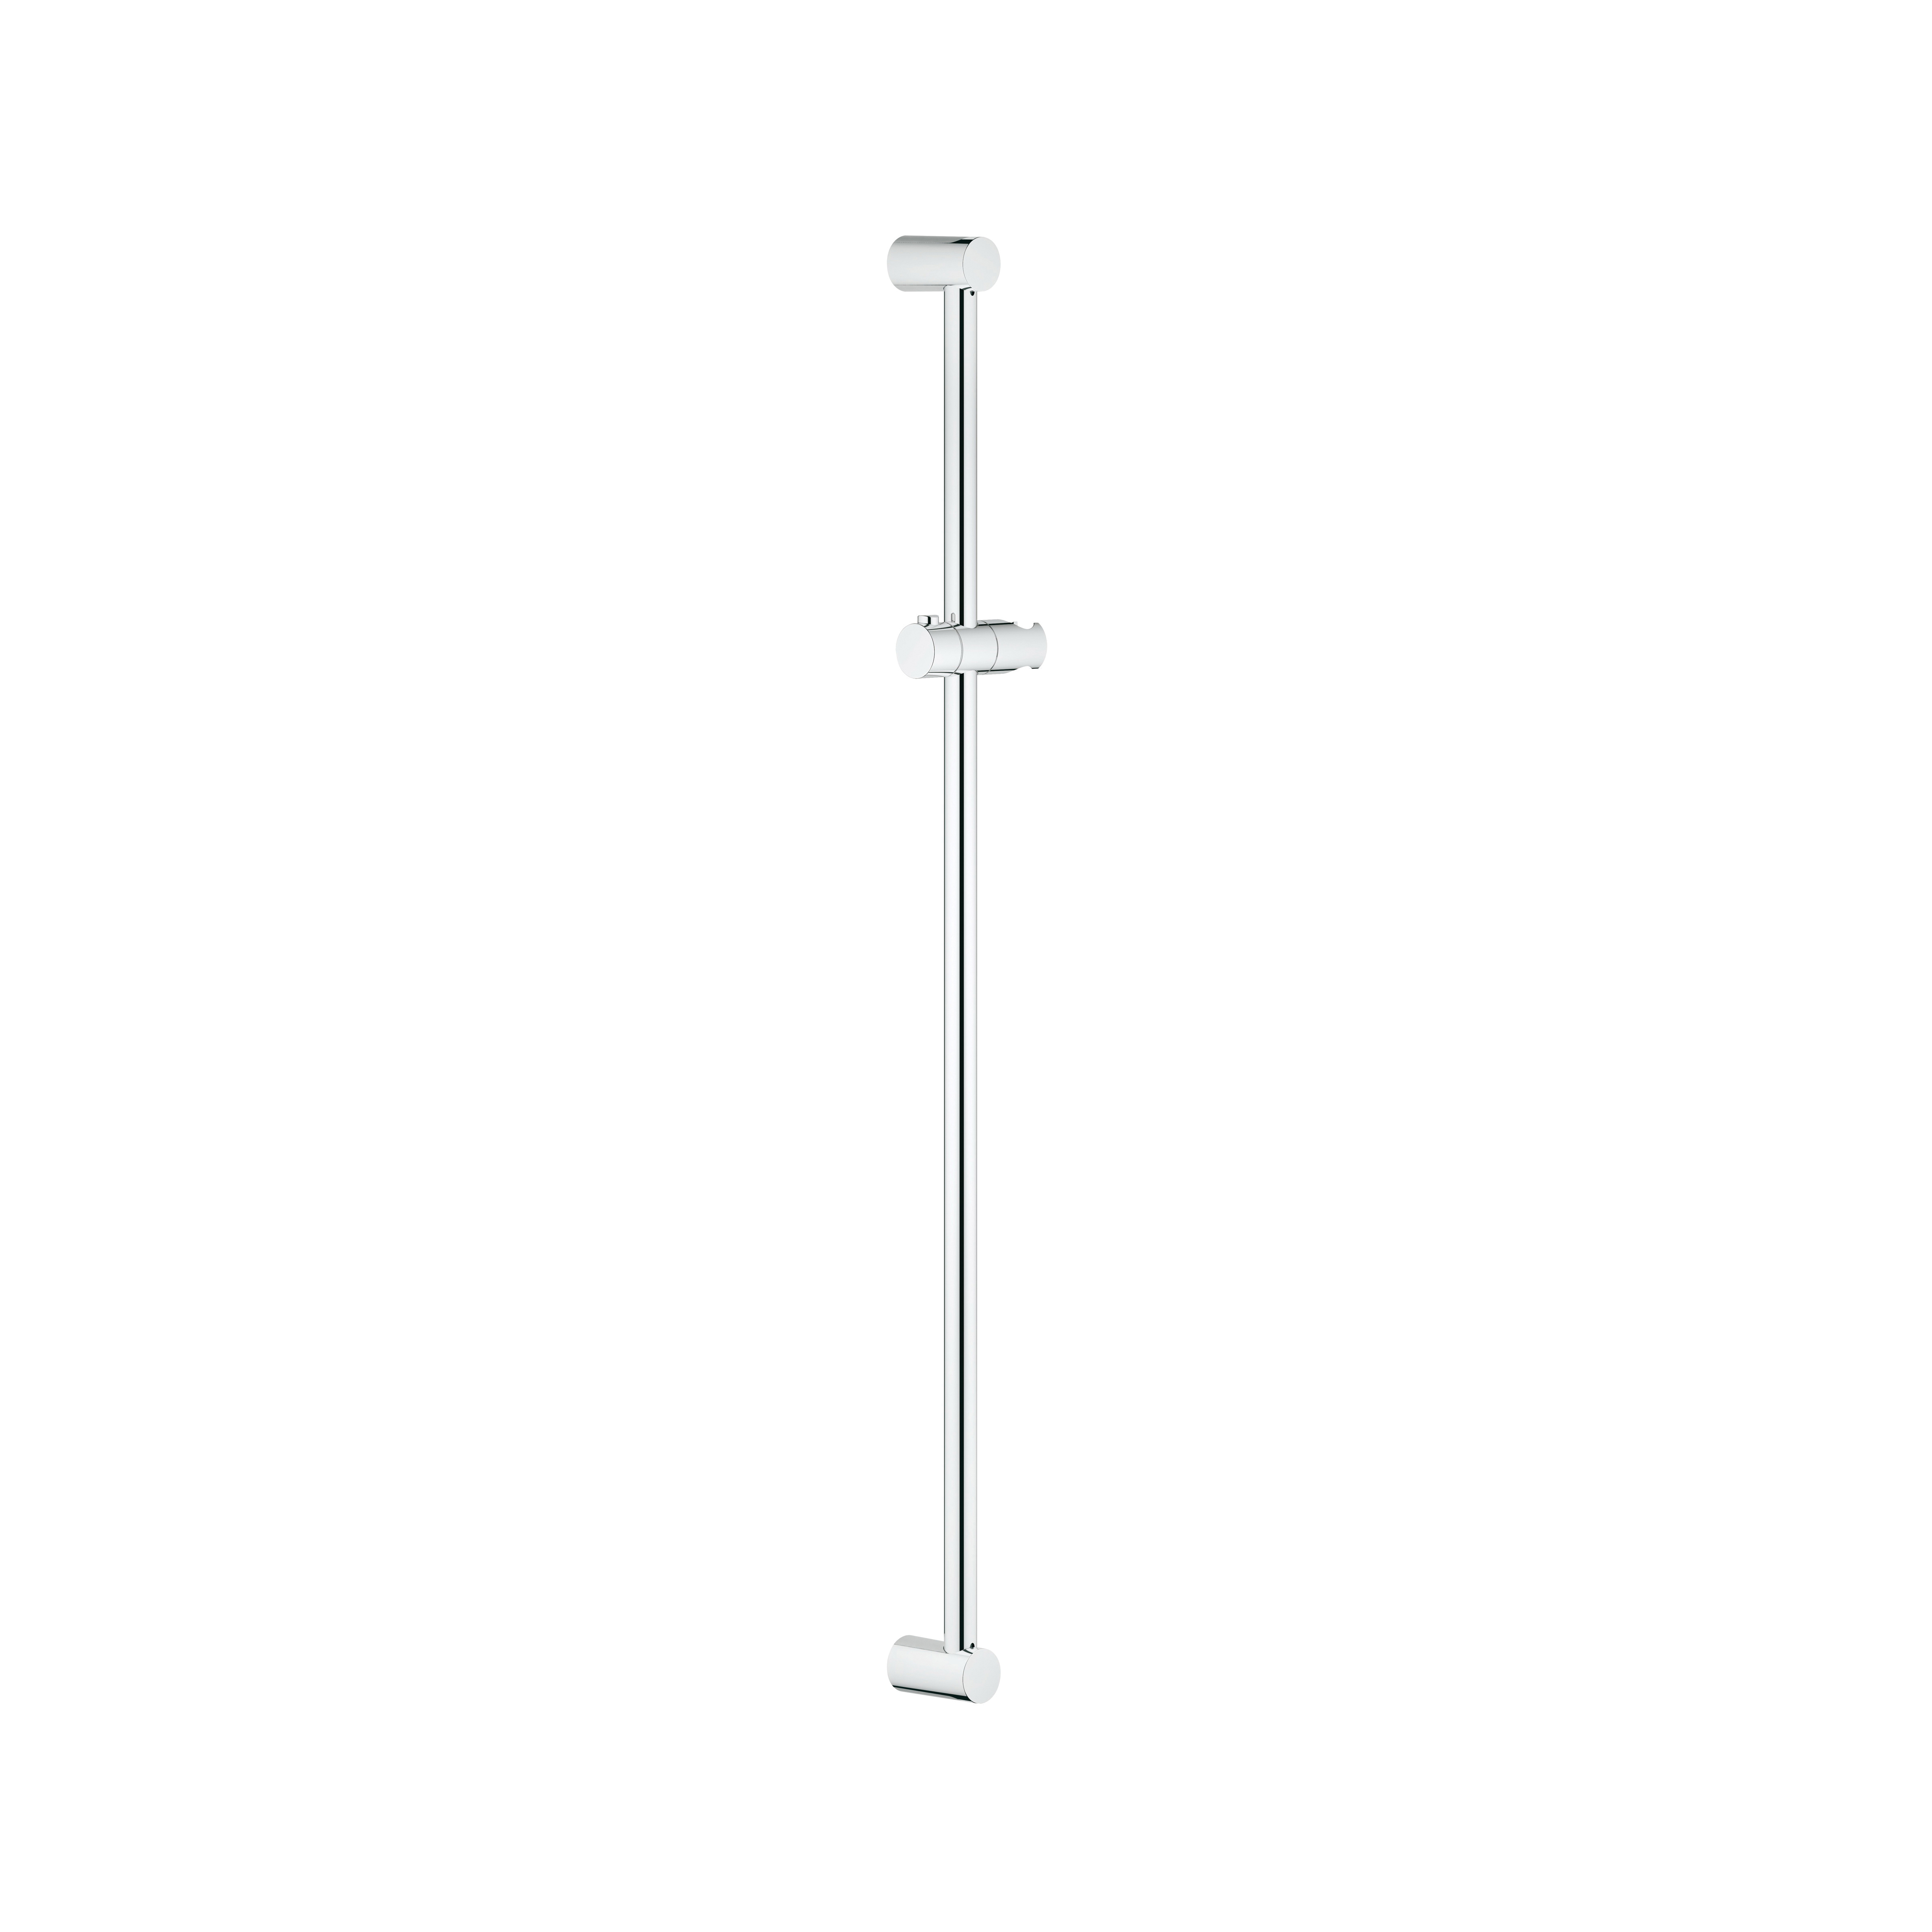 GROHE 27522000 New Tempesta® Cosmopolitan Shower Rail, 39 in L, Brass, Import